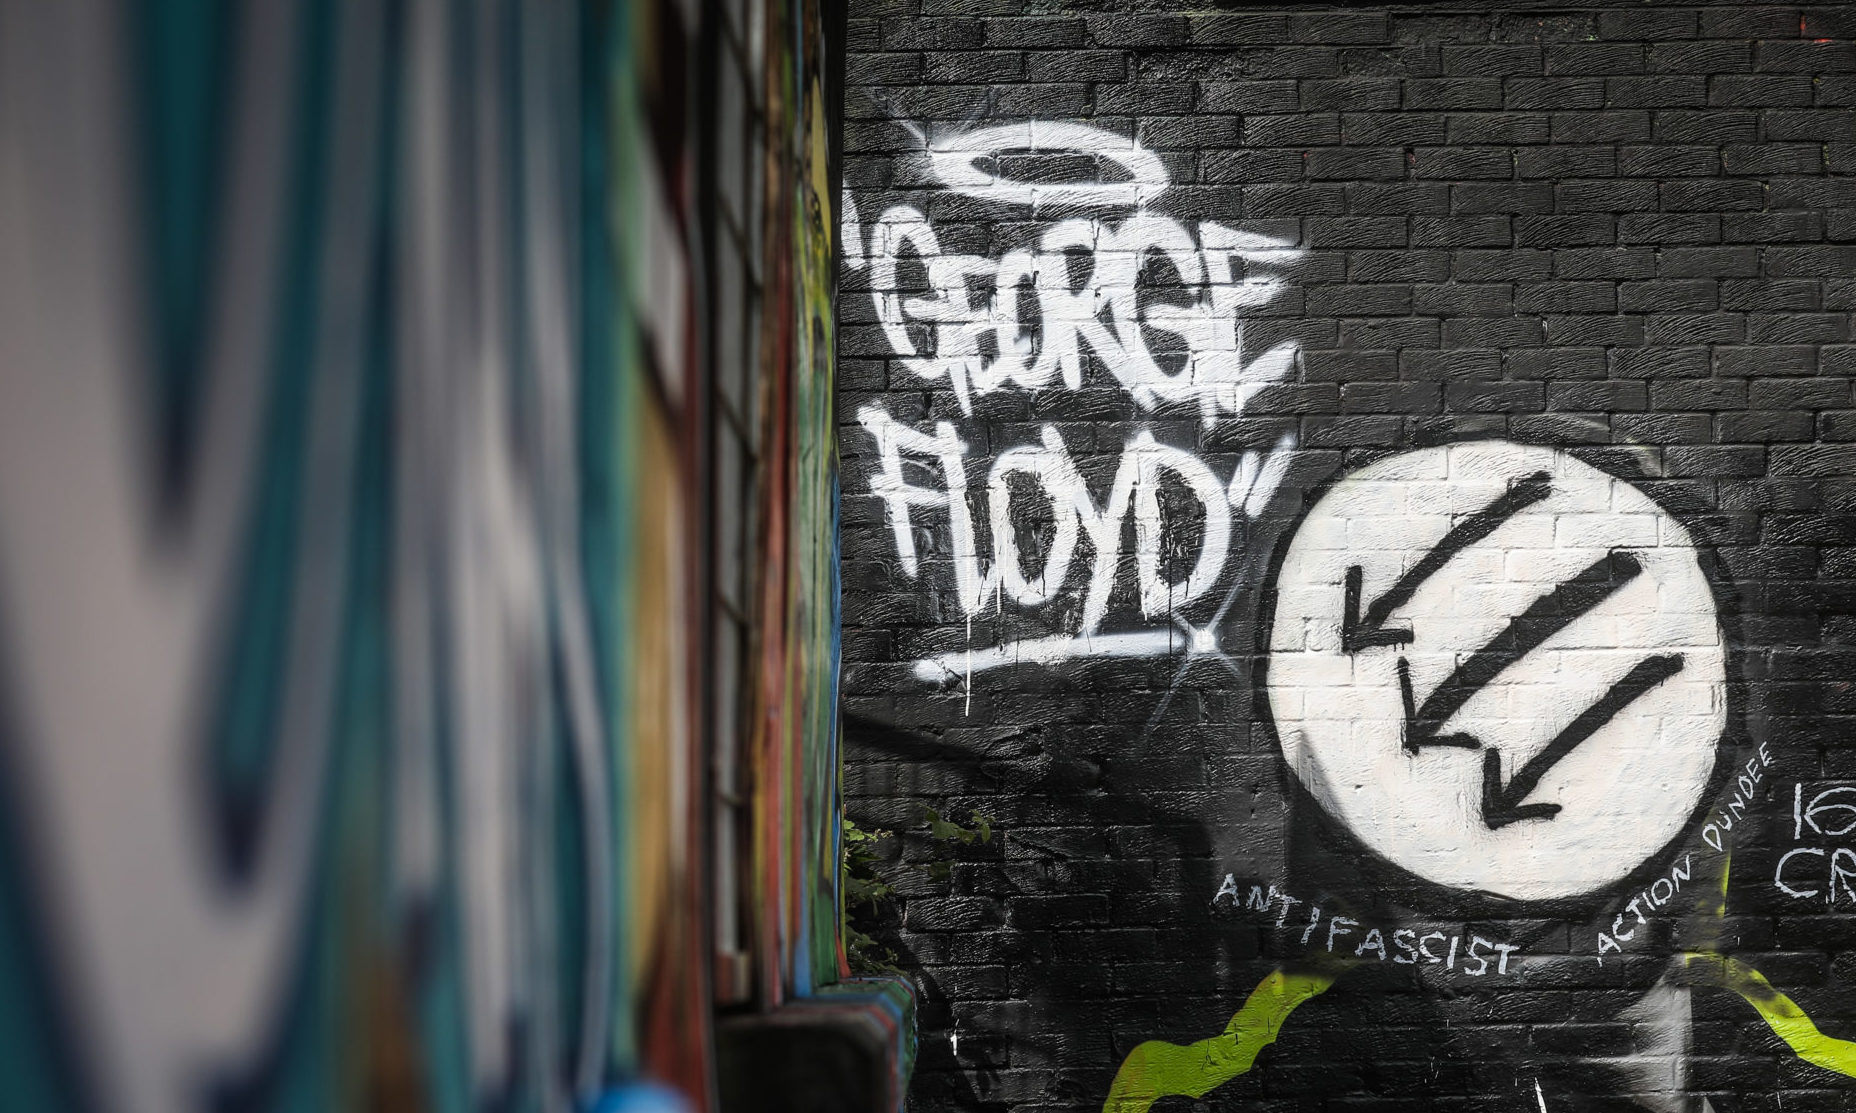 The George Floyd mural.